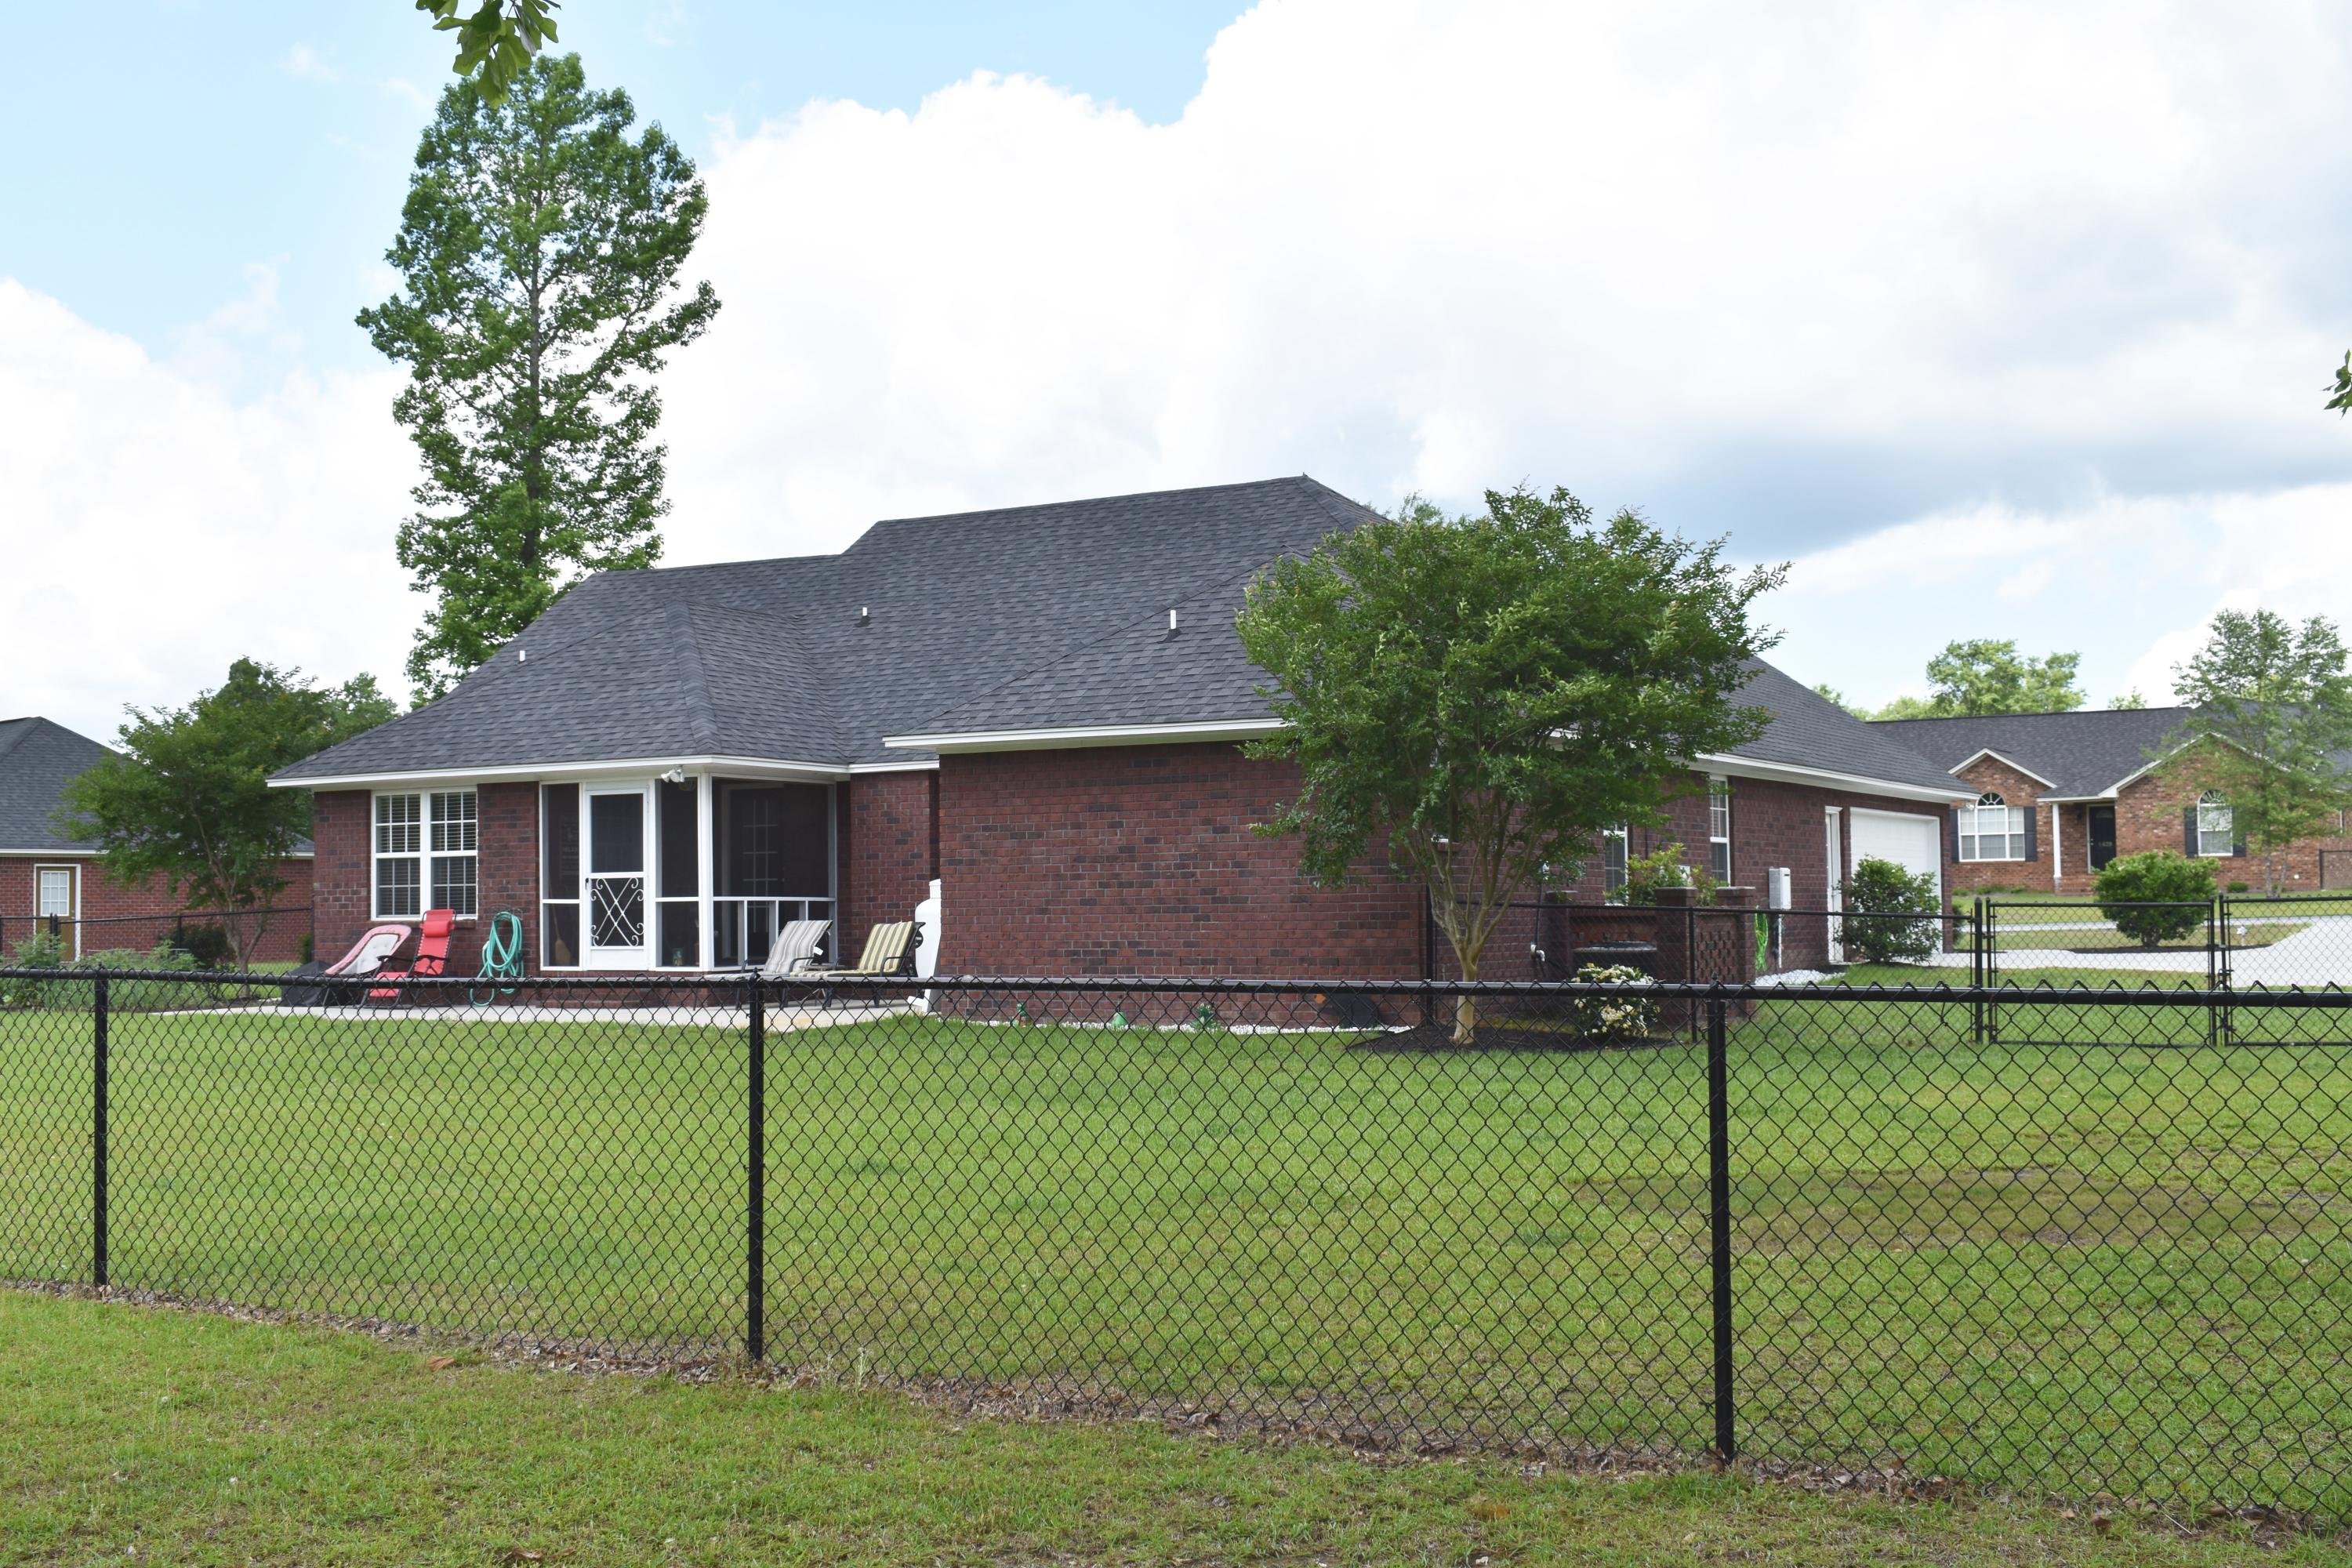 Pine Knoll Homes For Sale - 1444 Loblolly, Manning, SC - 34